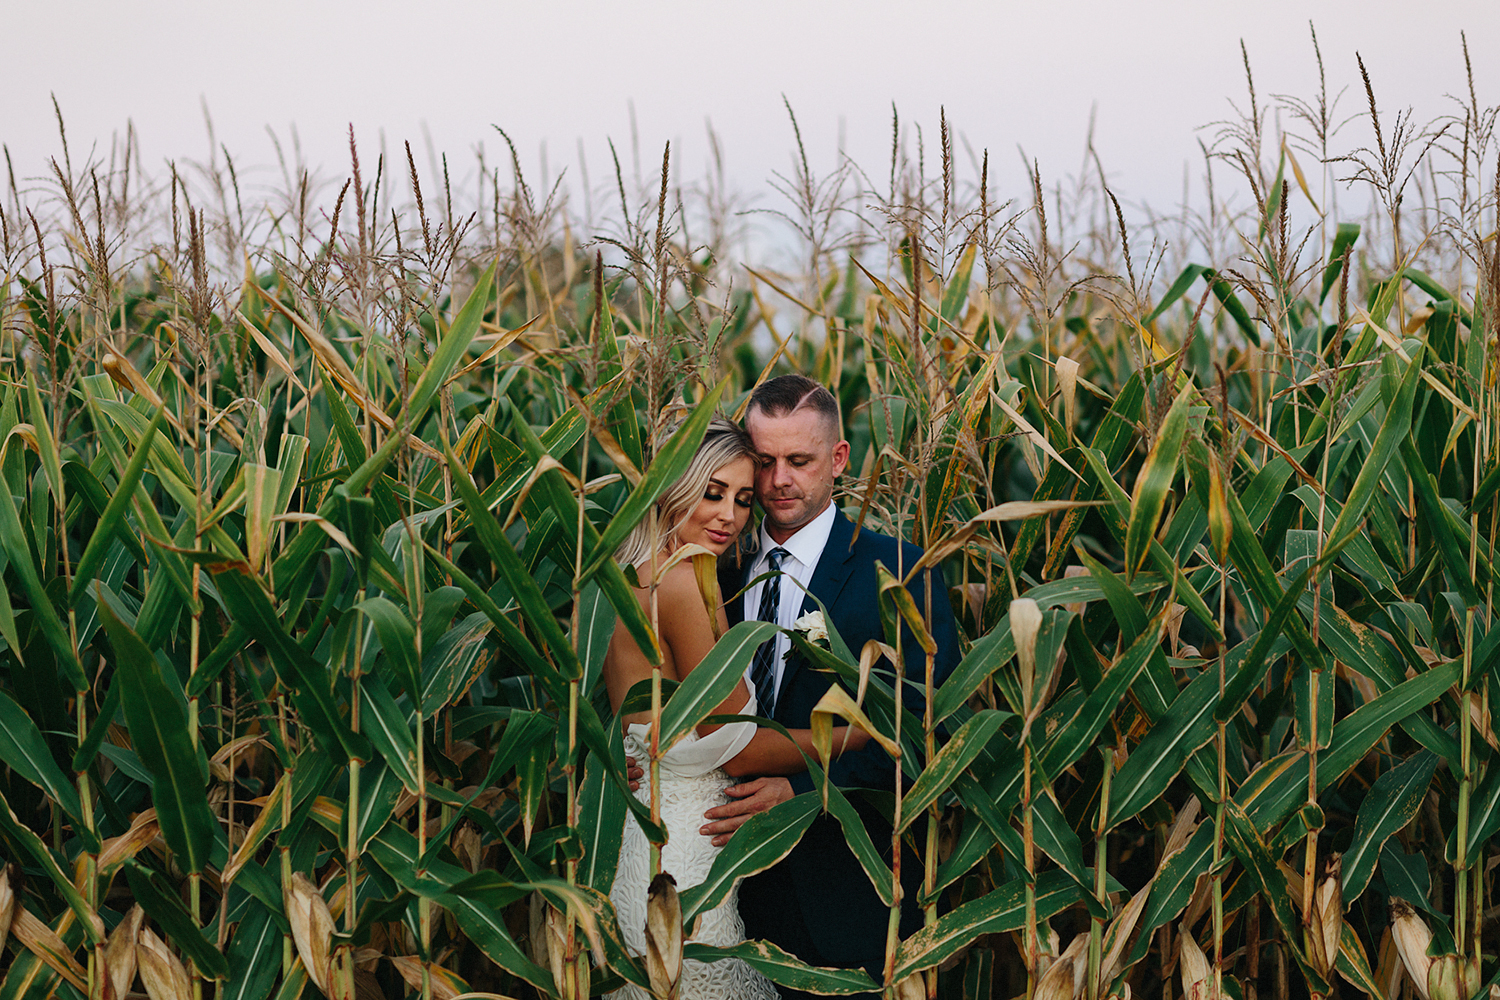 Documentary-Wedding-Photographers-in-Toronto-Candid-Natural-Dowswell-Barn-Wedding-Rustic-GTA-Muskoka-Farm-romantic-barn-golden-hour-sunset-portraits-of-groom-and-bride-intimate-romantic-cornfield.jpg